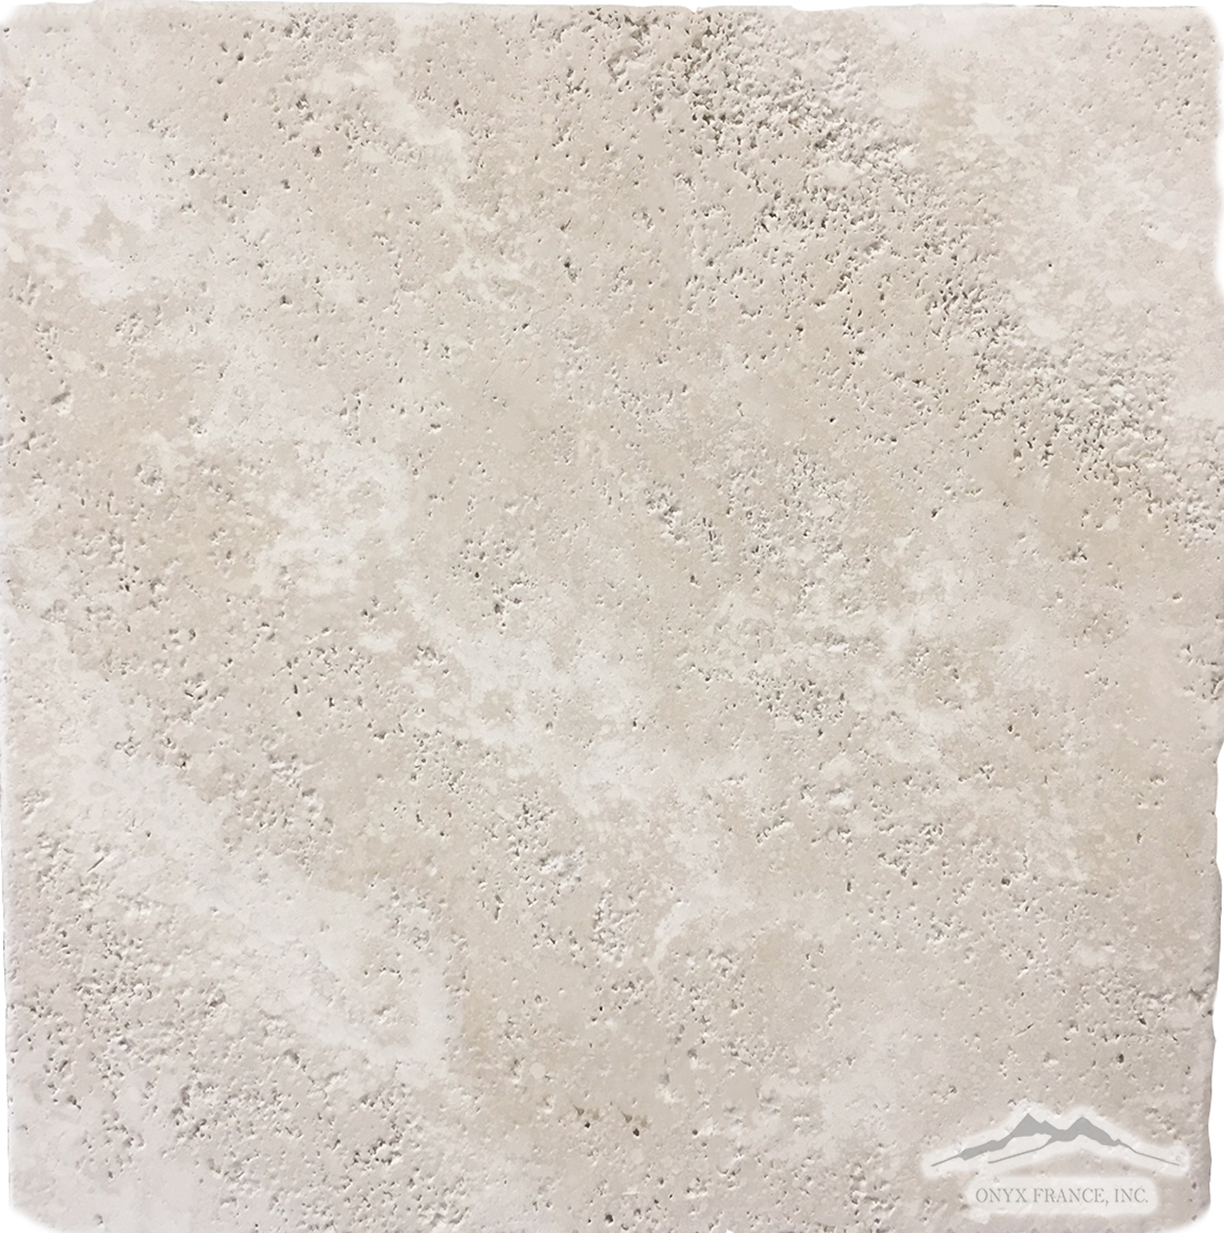 "Beige Antique Travertine 12"" x 12"" Tile Tumbled"